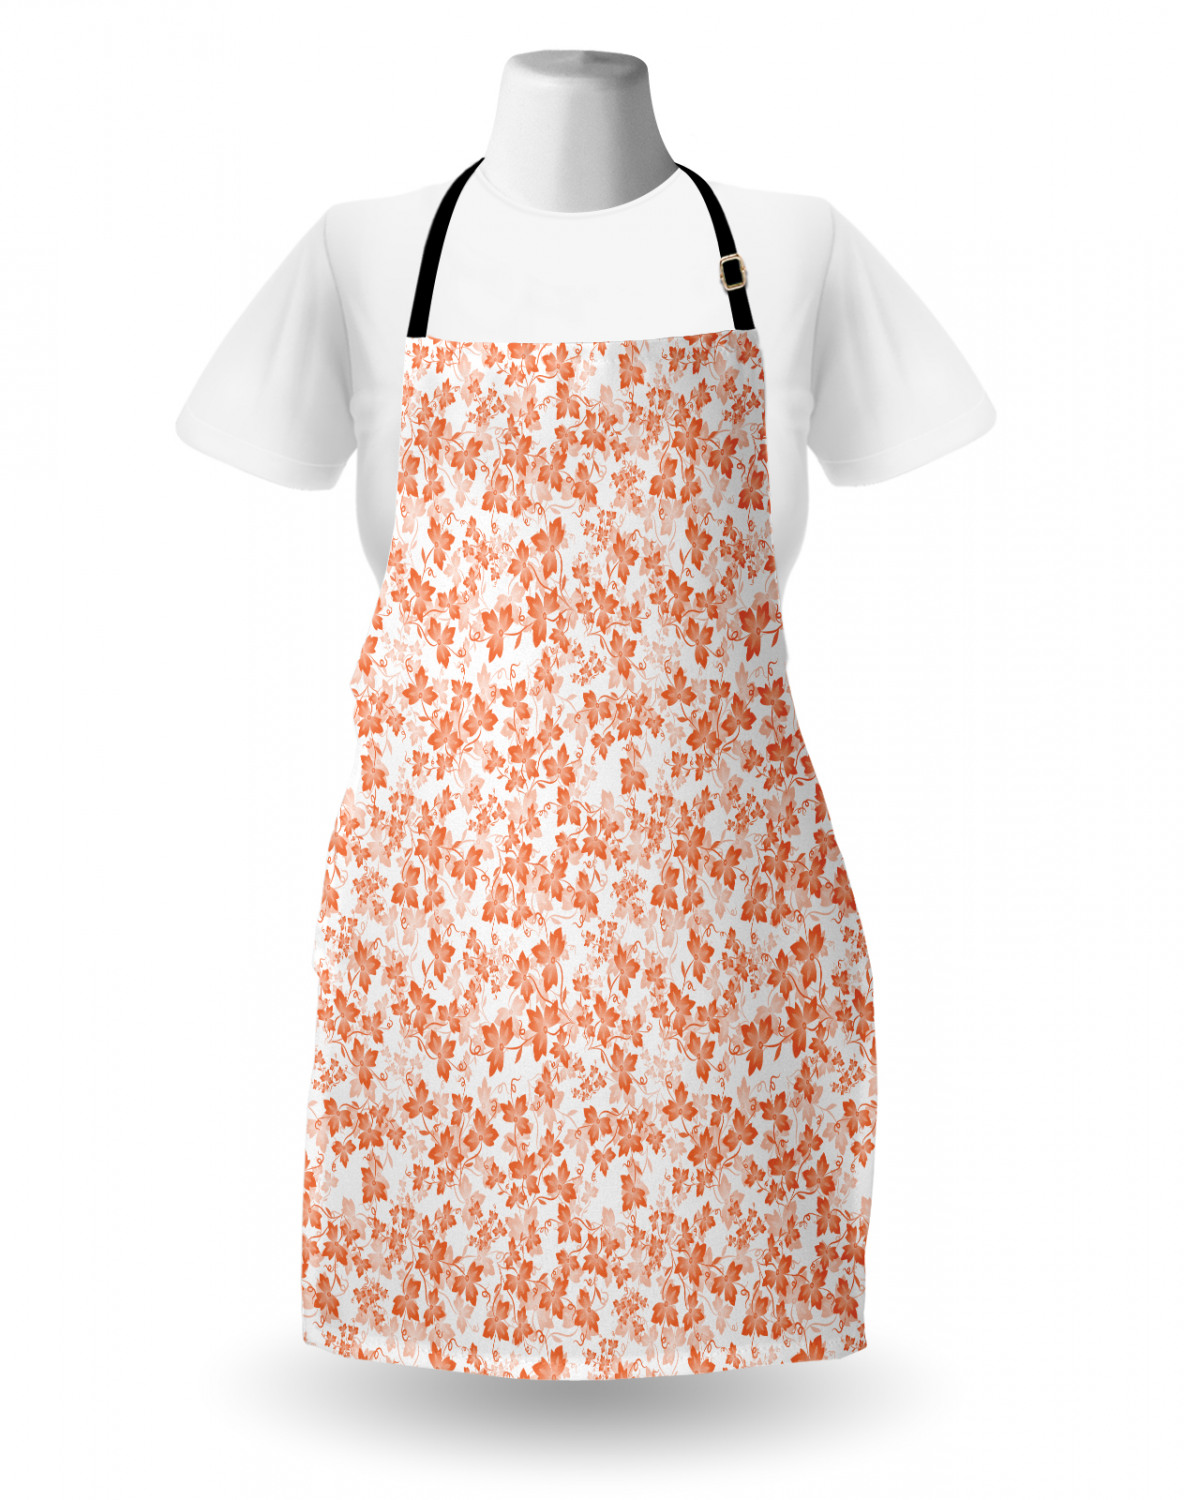 Ambesonne-Outdoor-Use-Apron-with-Adjustable-Neck-Strap-for-Gardening-and-Cooking miniatura 56